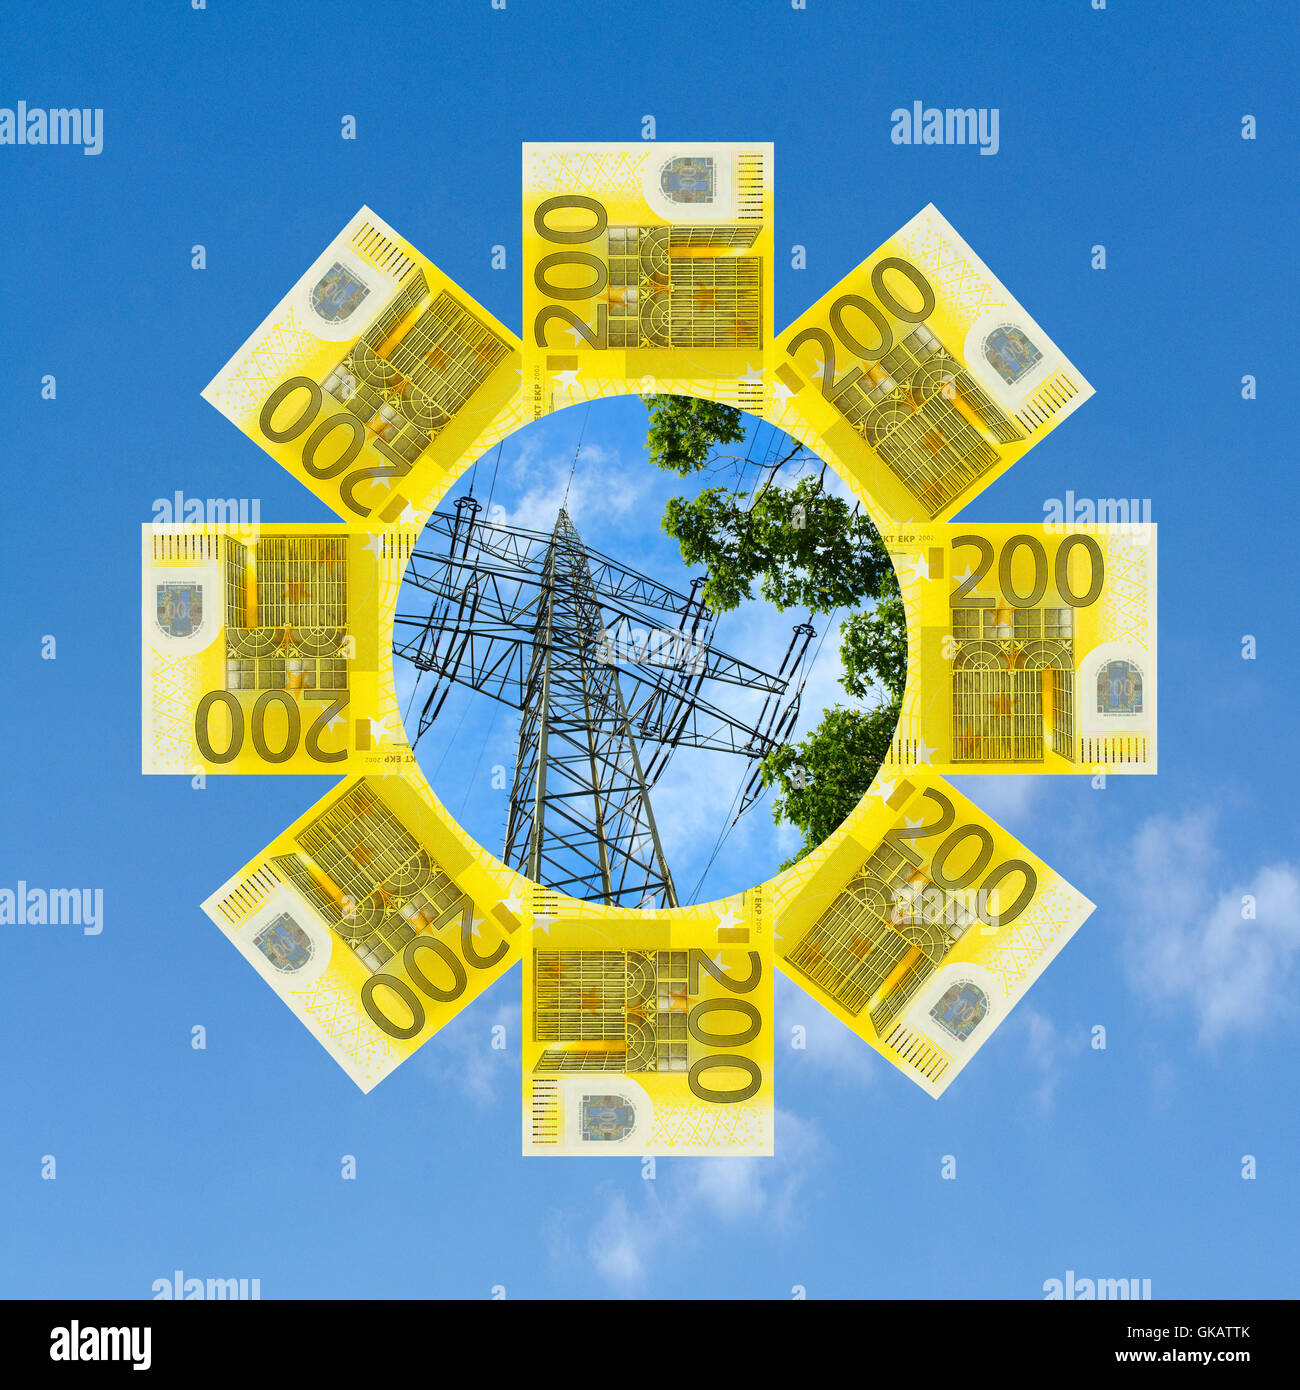 energy transition: costs and benefits - Stock Image